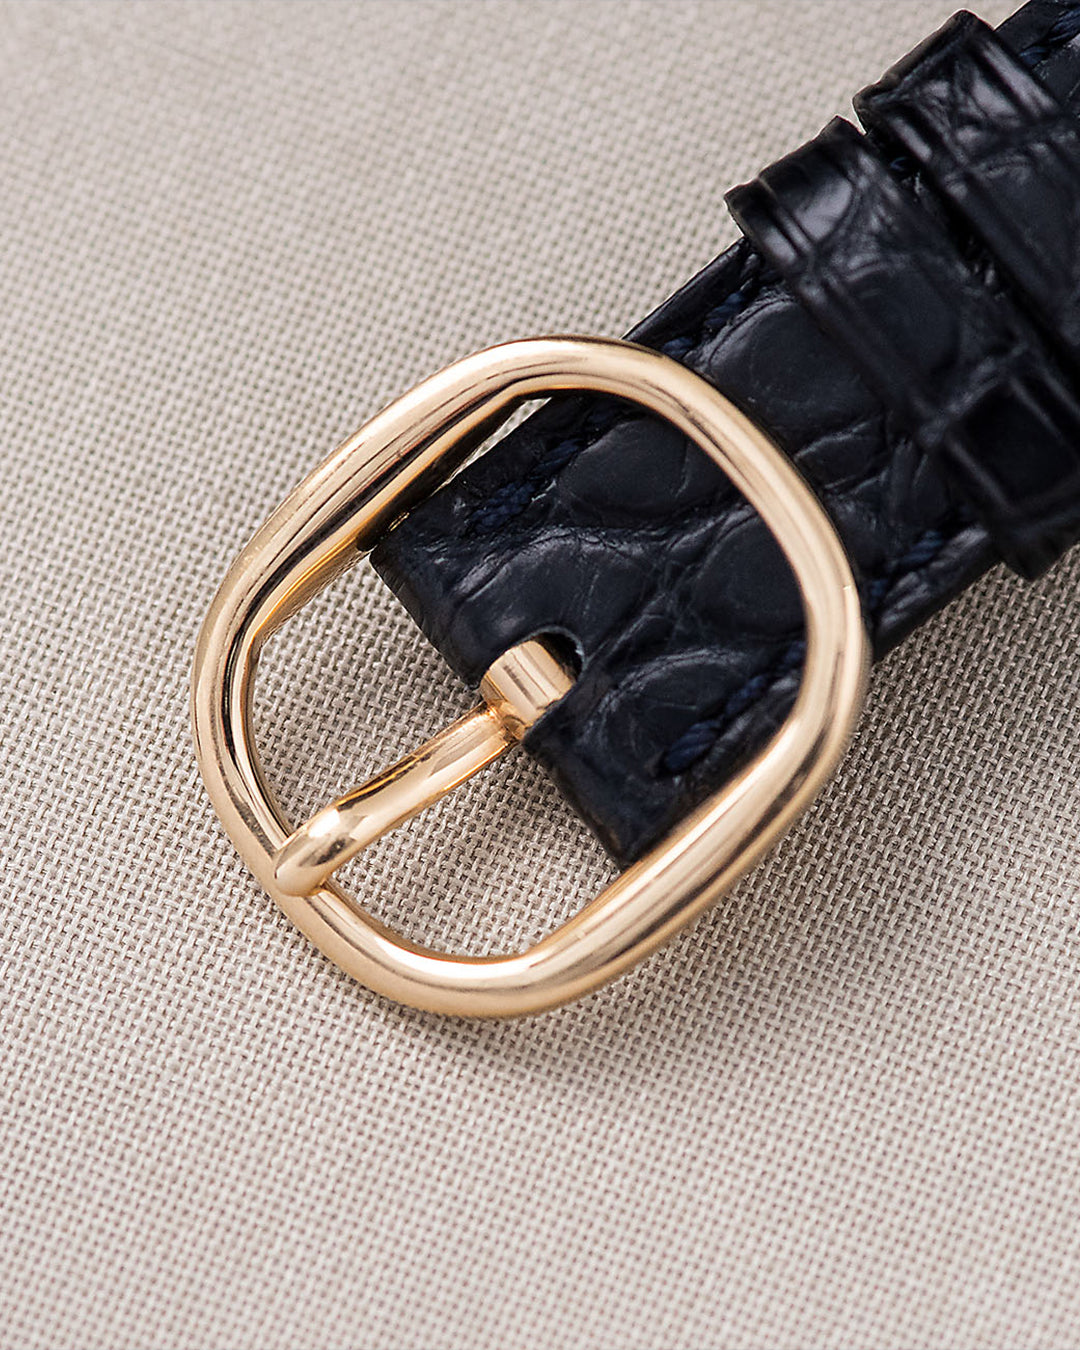 Patek Philippe Ellipse watch strap buckle  In Why the Patek Philippe Golden Ellipse Should Matter Just as Much as the Nautilus for A Collected Man London